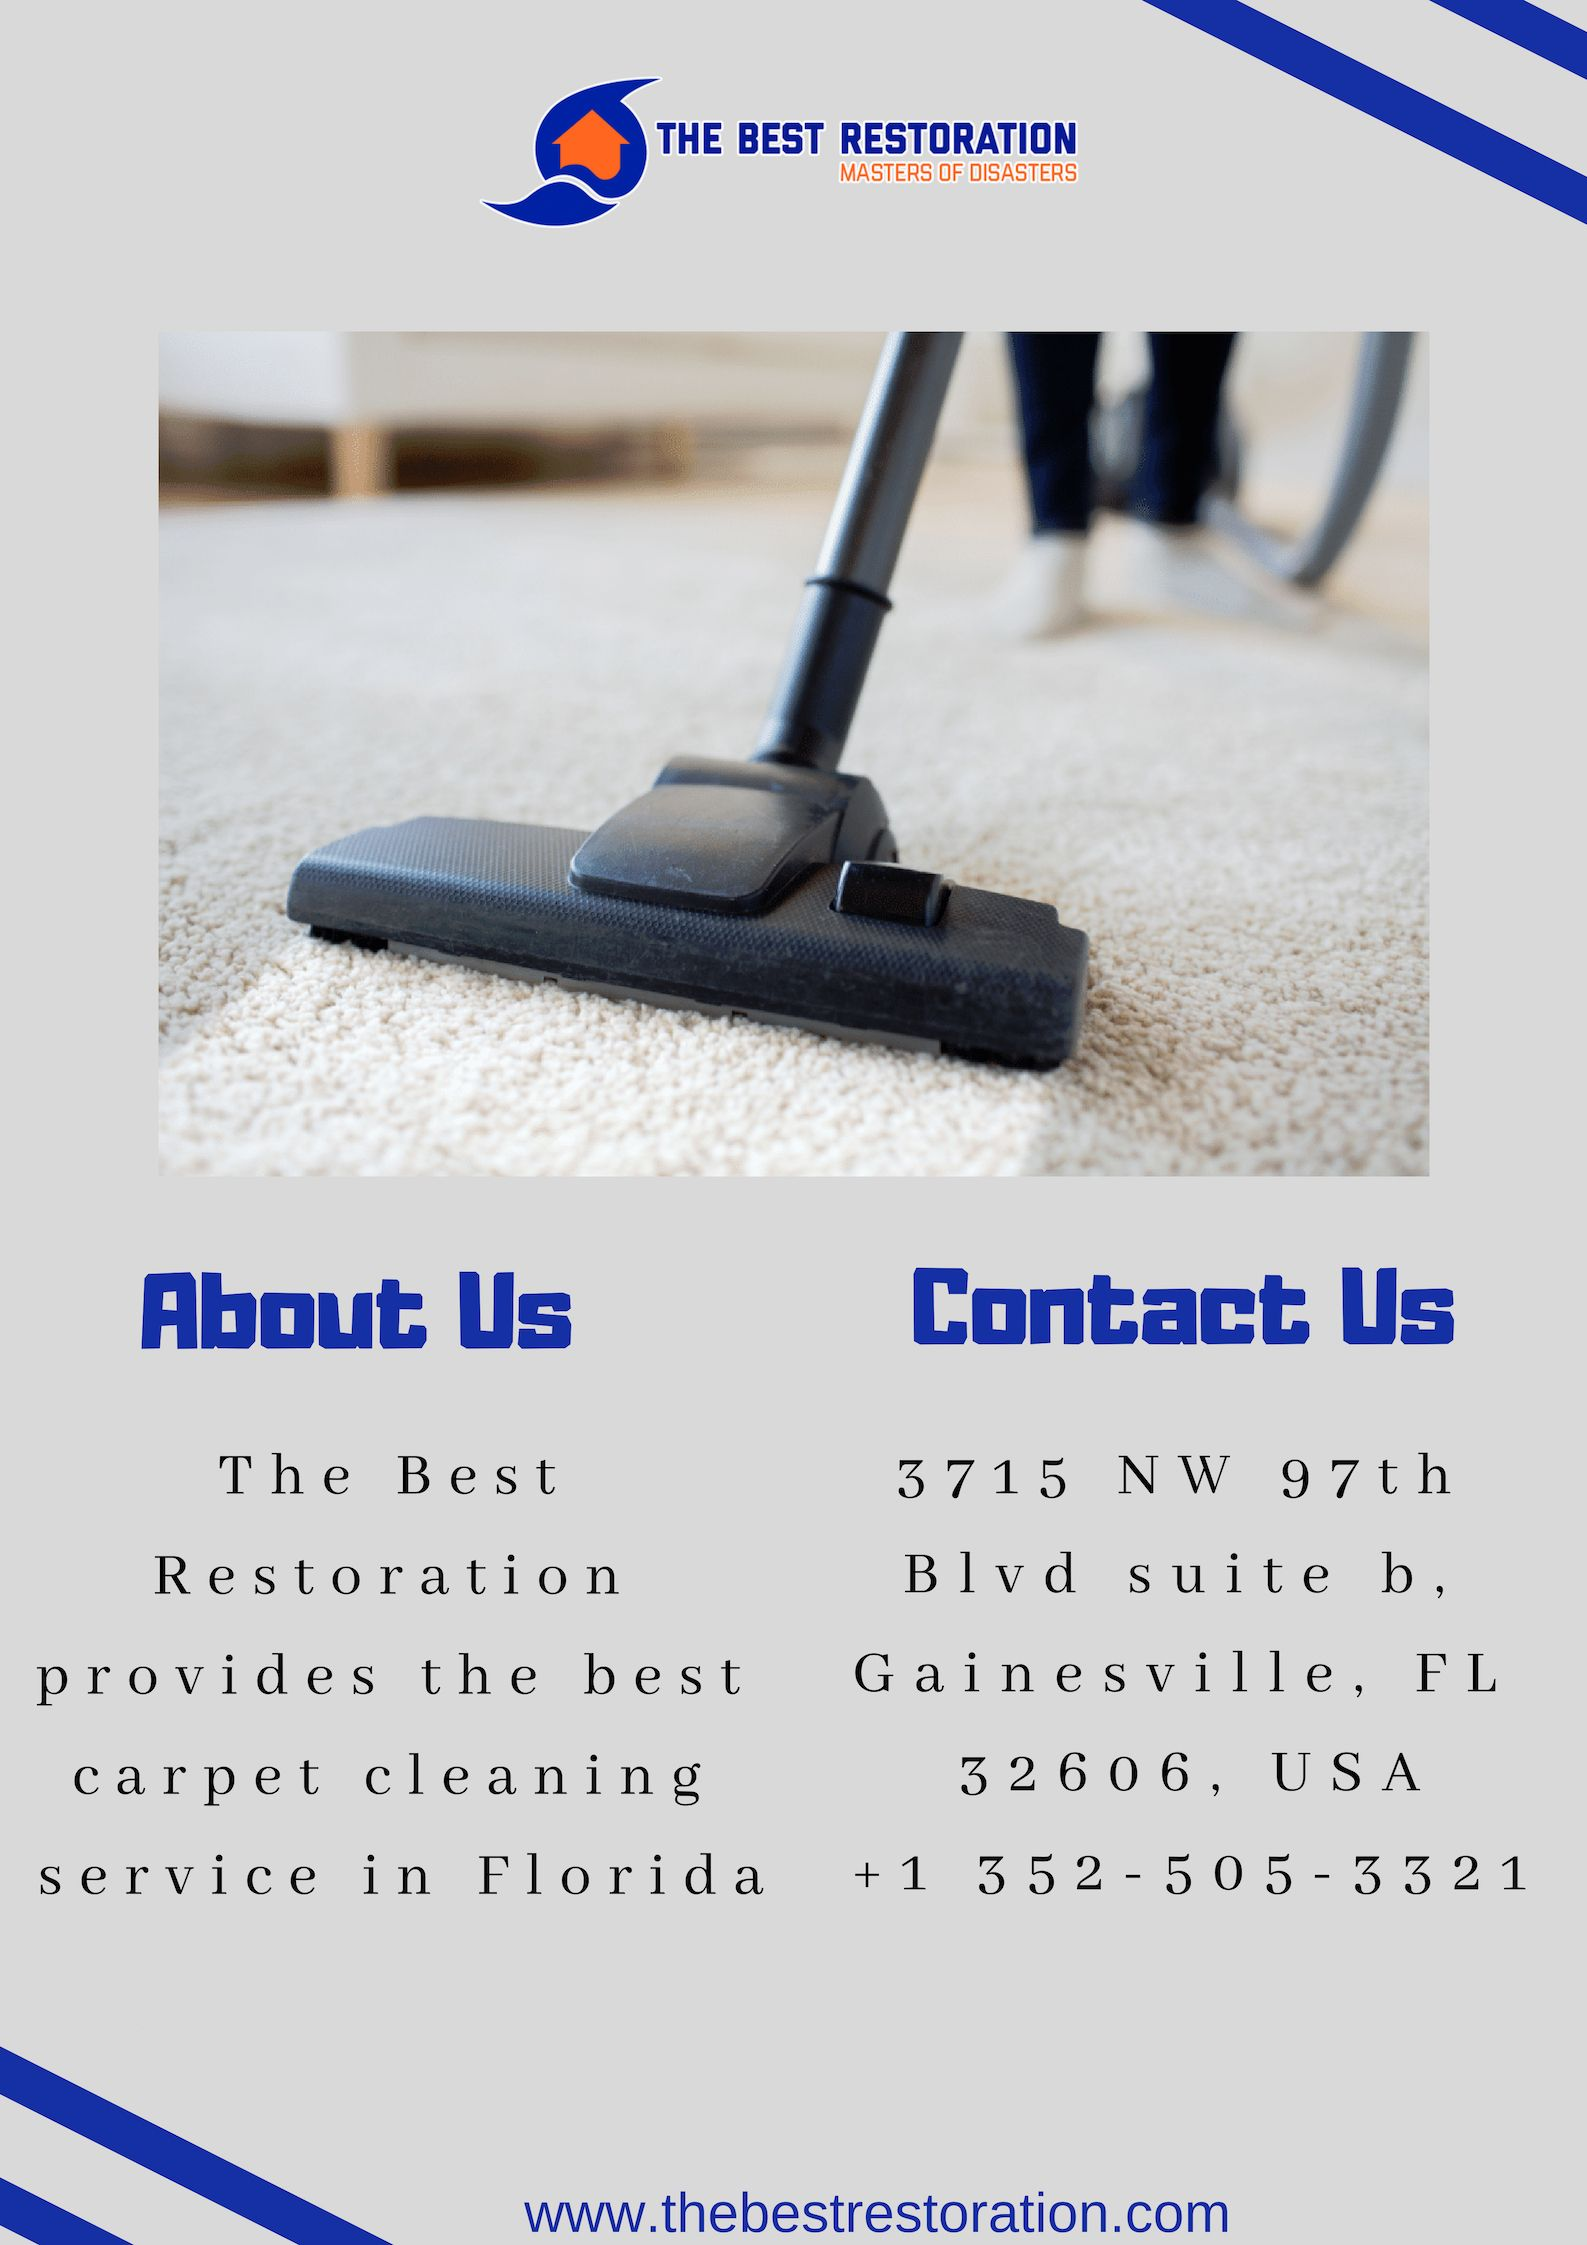 The Best Restoration Provides One Of The Best Carpet Cleaning Services In Florida Call Us Now How To Clean Carpet Carpet Cleaning Service Carpet